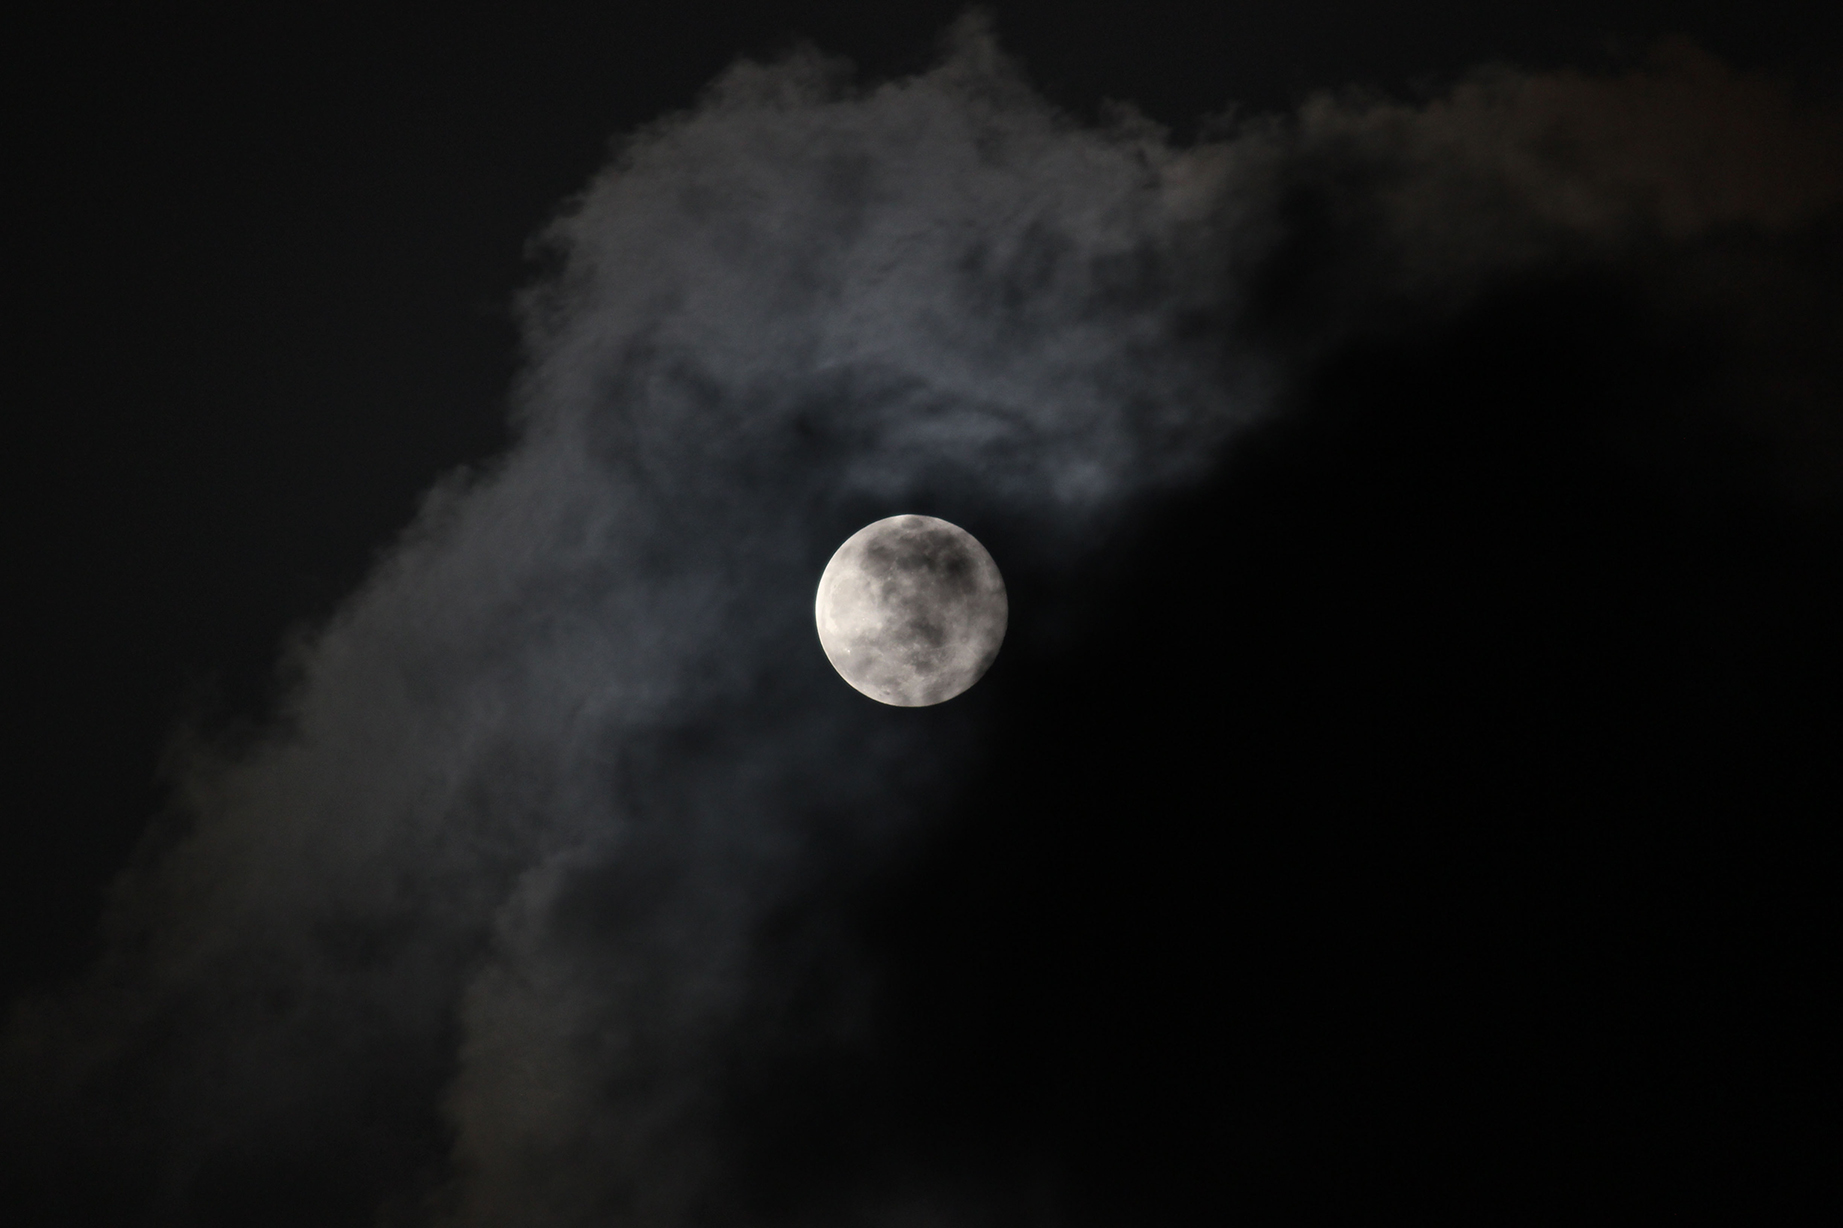 A full-moon moments before disappearing into the clouds.